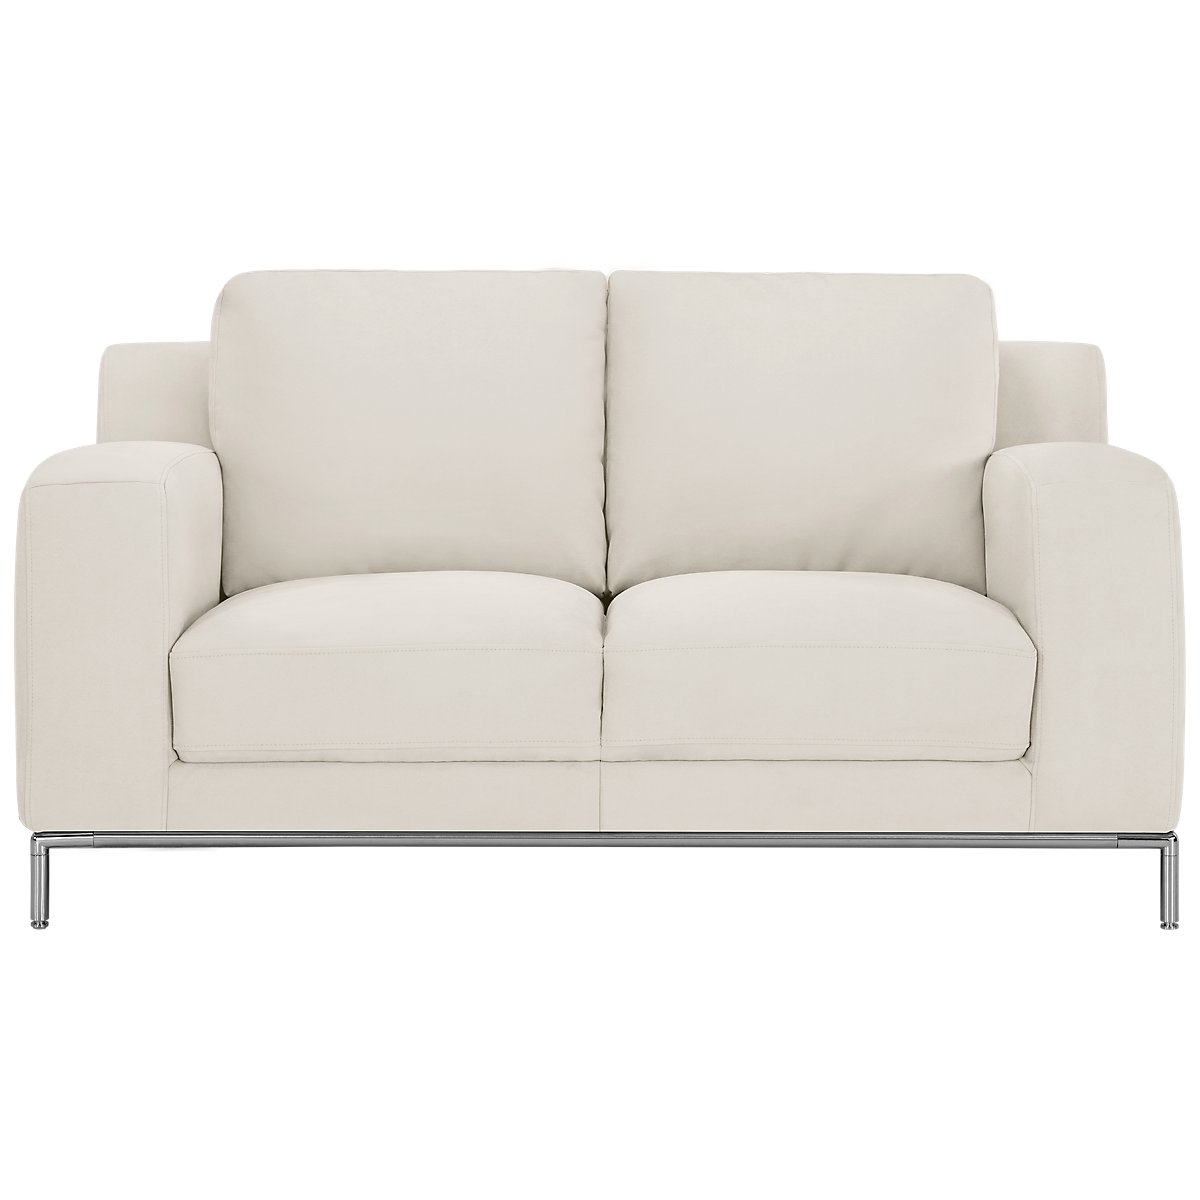 city furniture  living room furniture  loveseats - wynn white microfiber loveseat